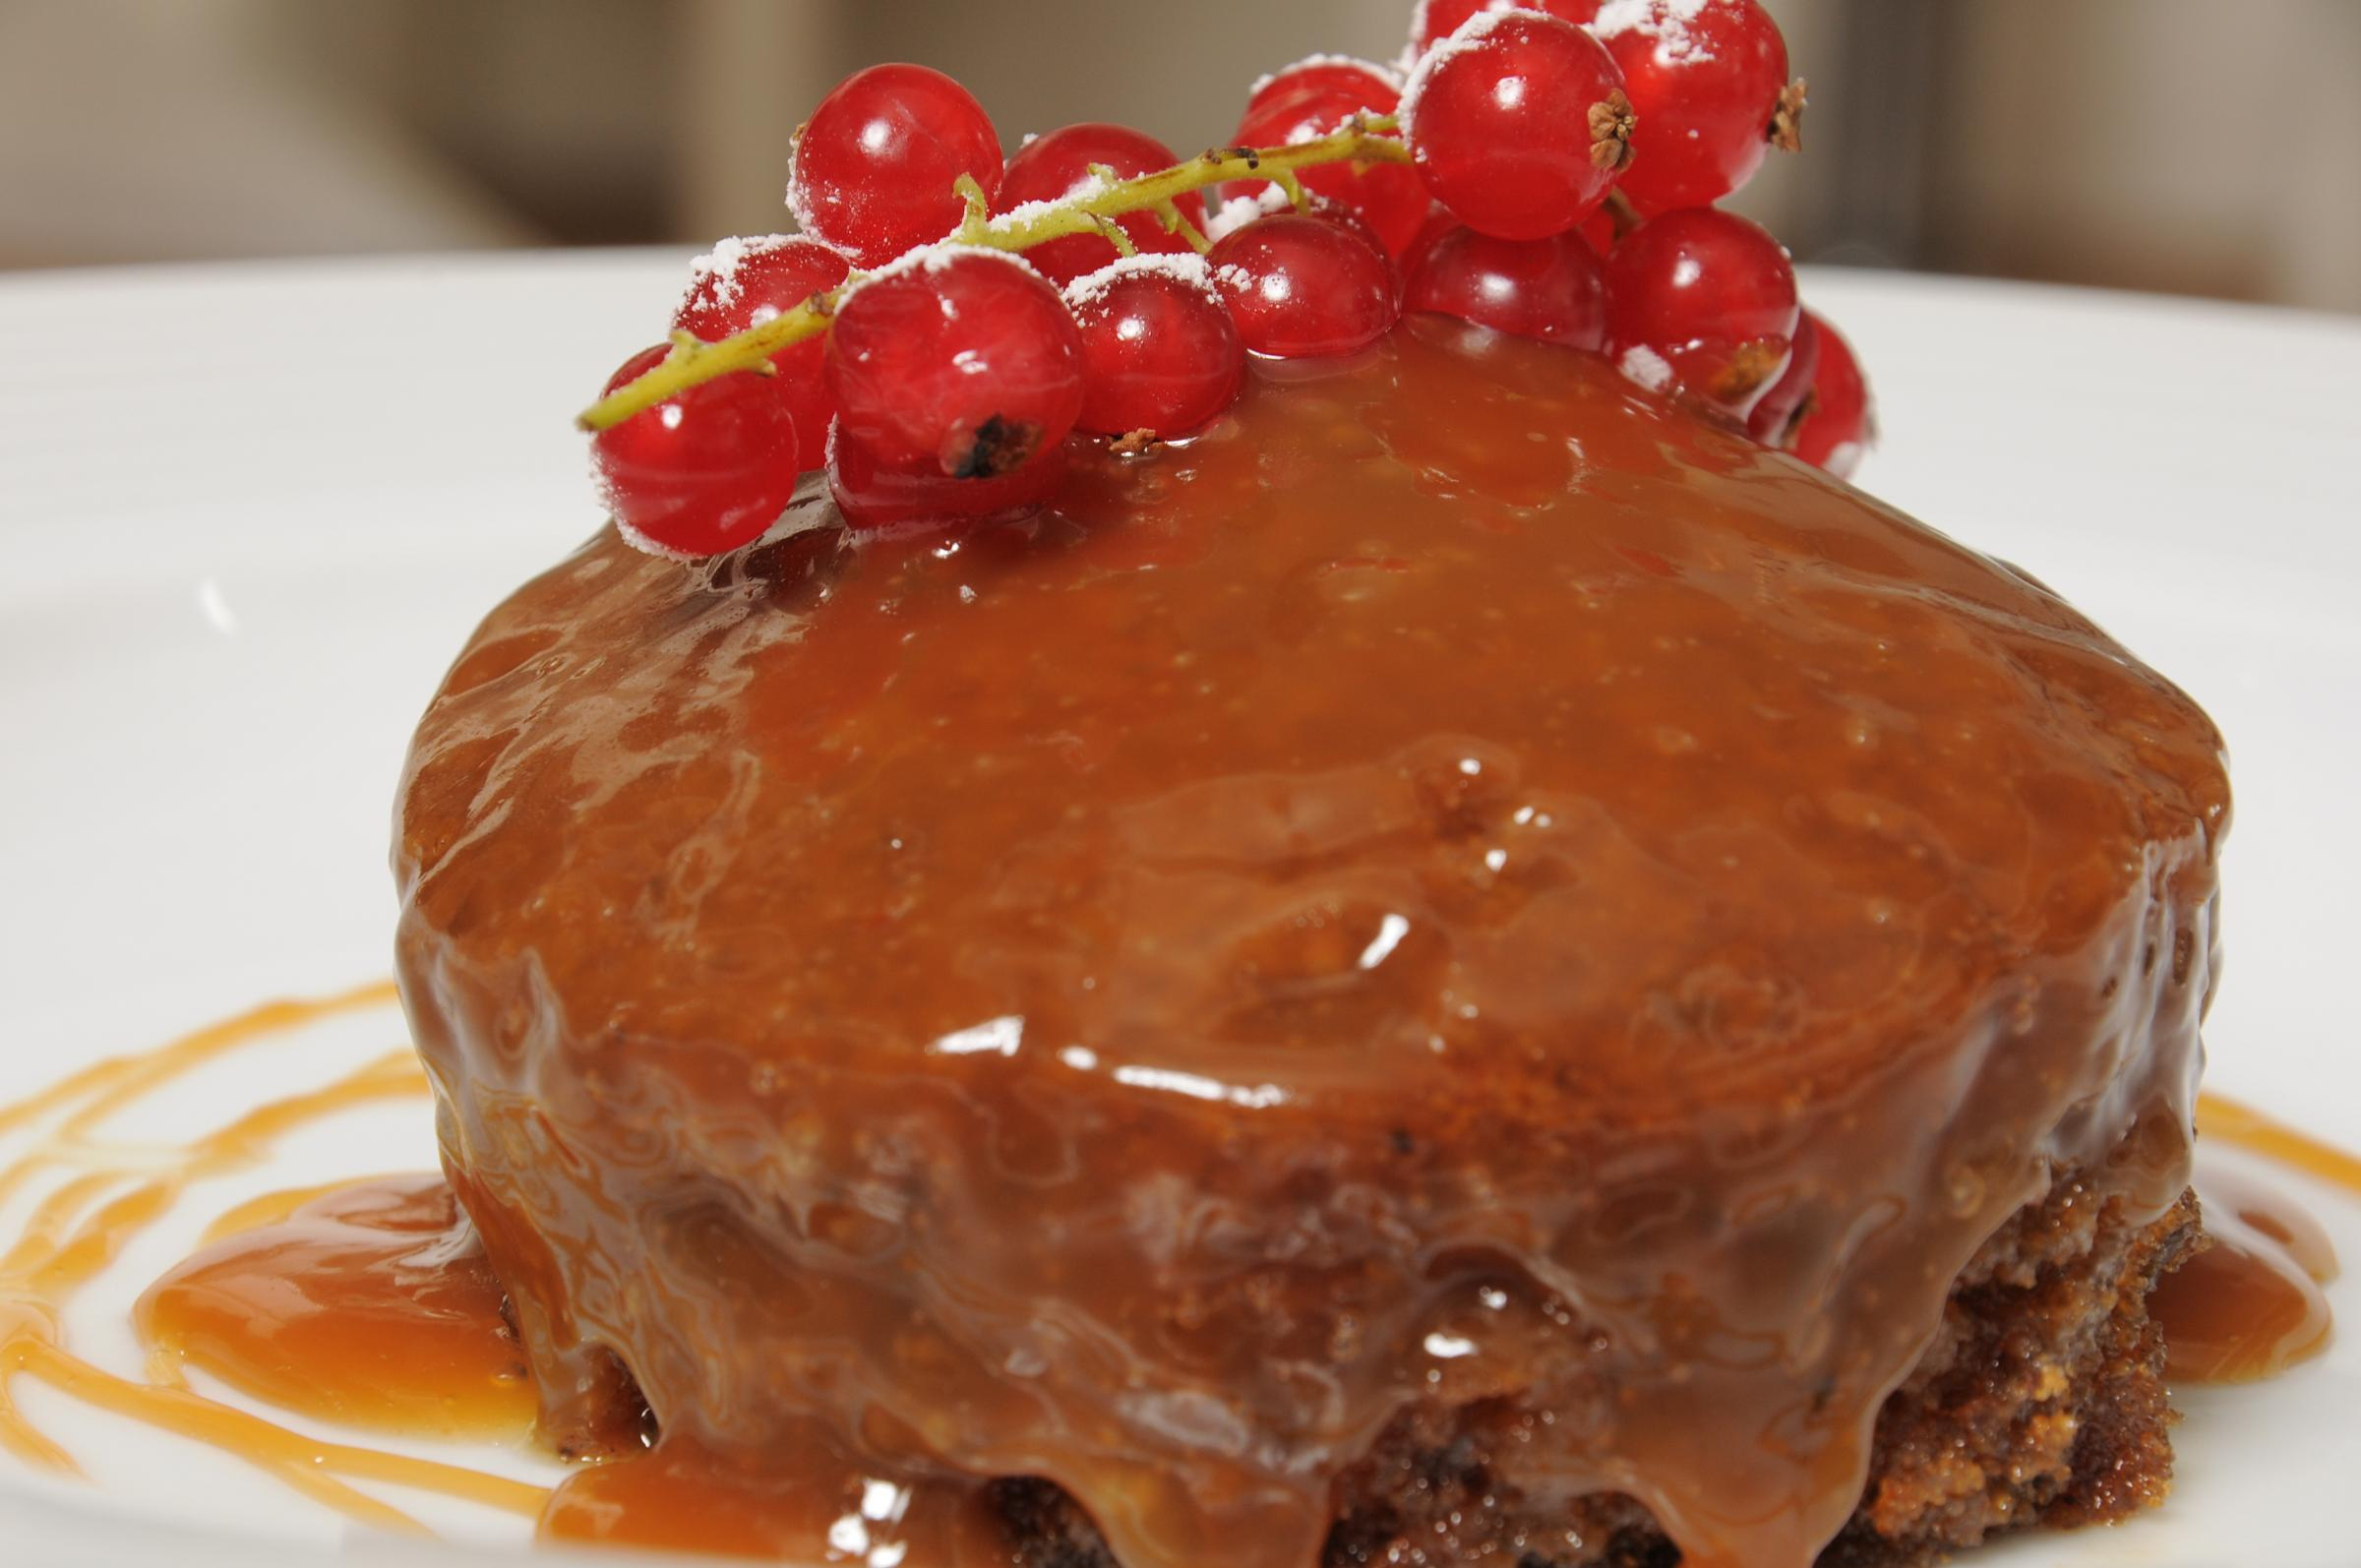 RECIPE OF THE WEEK: Nick's decadent Sticky toffee pudding